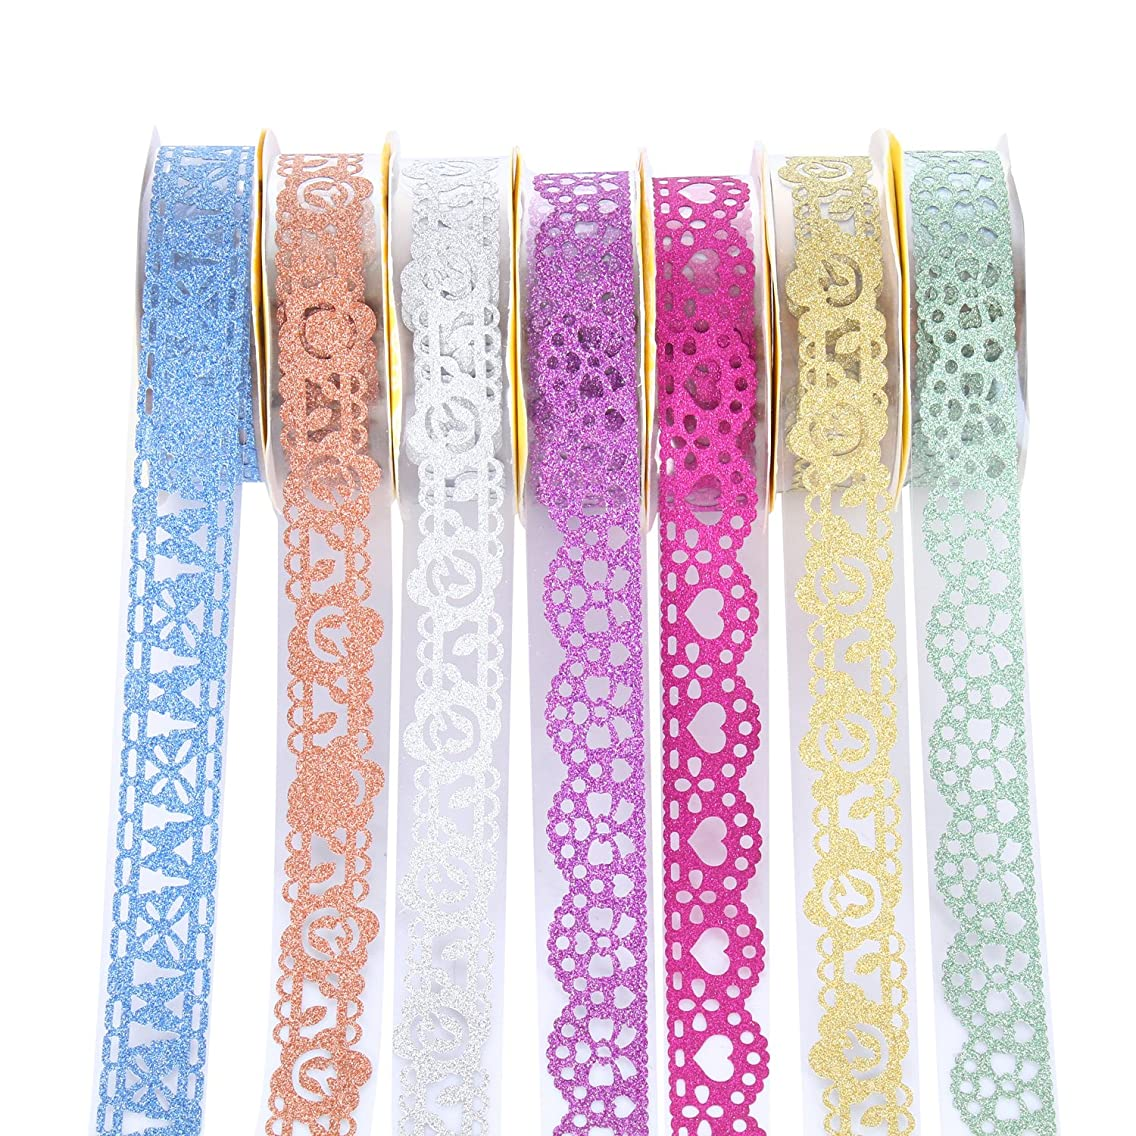 moinkerin 7 Rolls Decorative Sticky Adhesive Lace Tape Arts and Crafts self Adhesive Tape Masking Tape for Kids,Students DIY, Crafting, Scrapbooking, Card Making